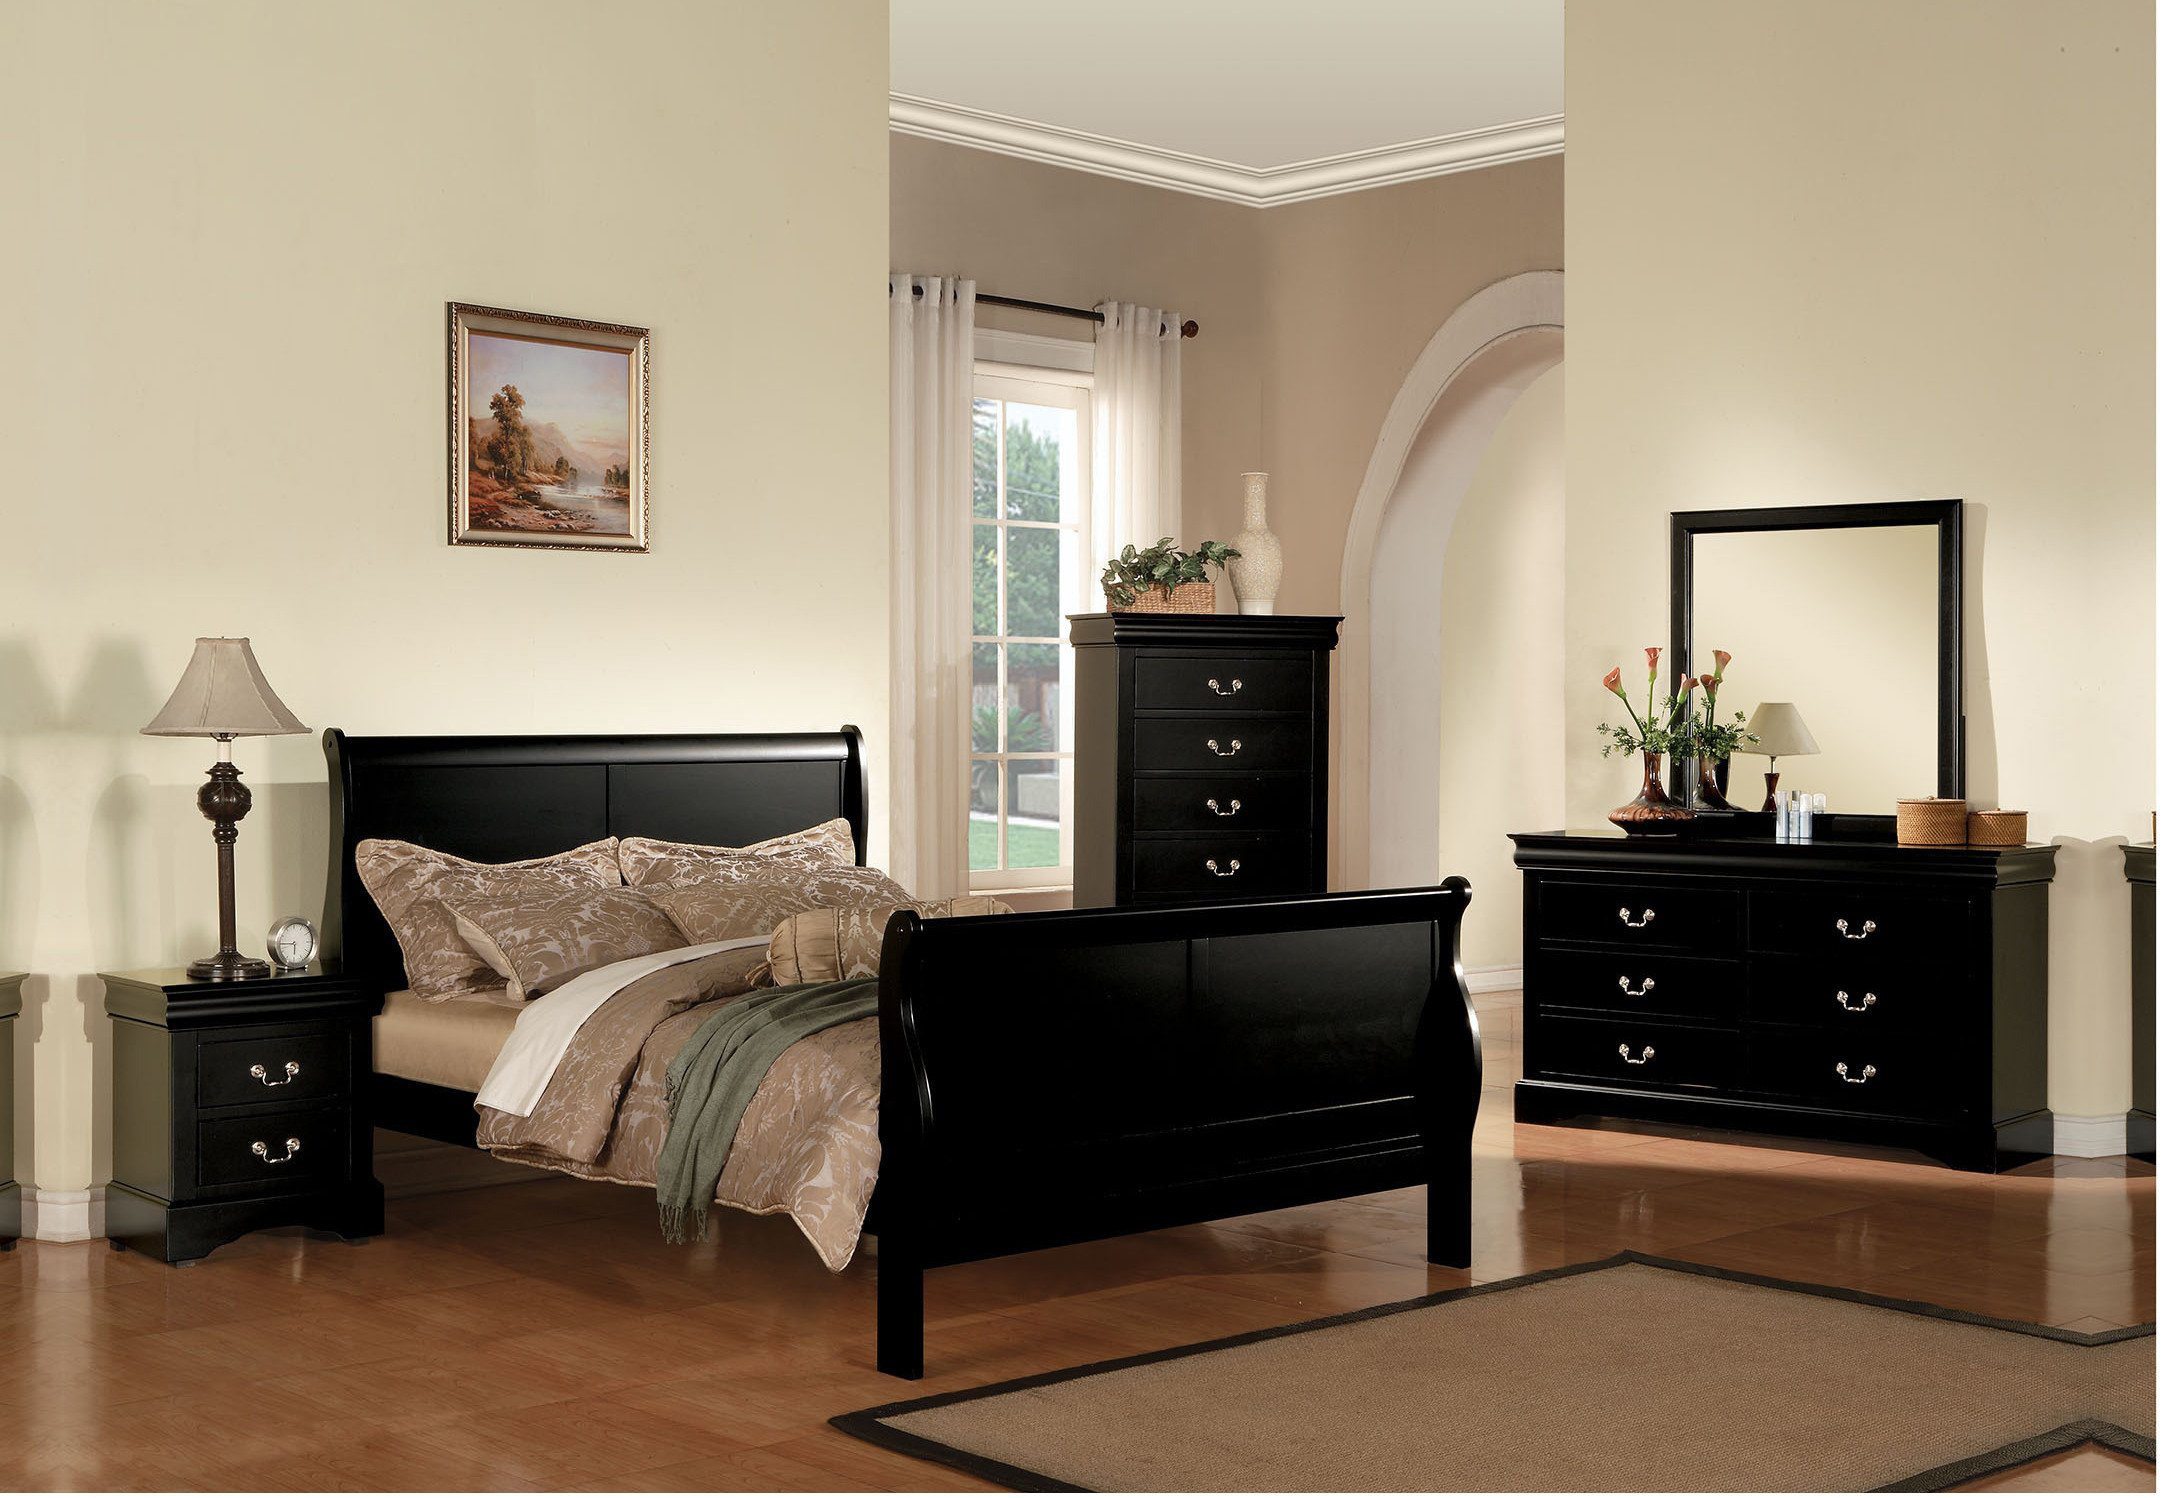 4pc louis philippe bedroom set review